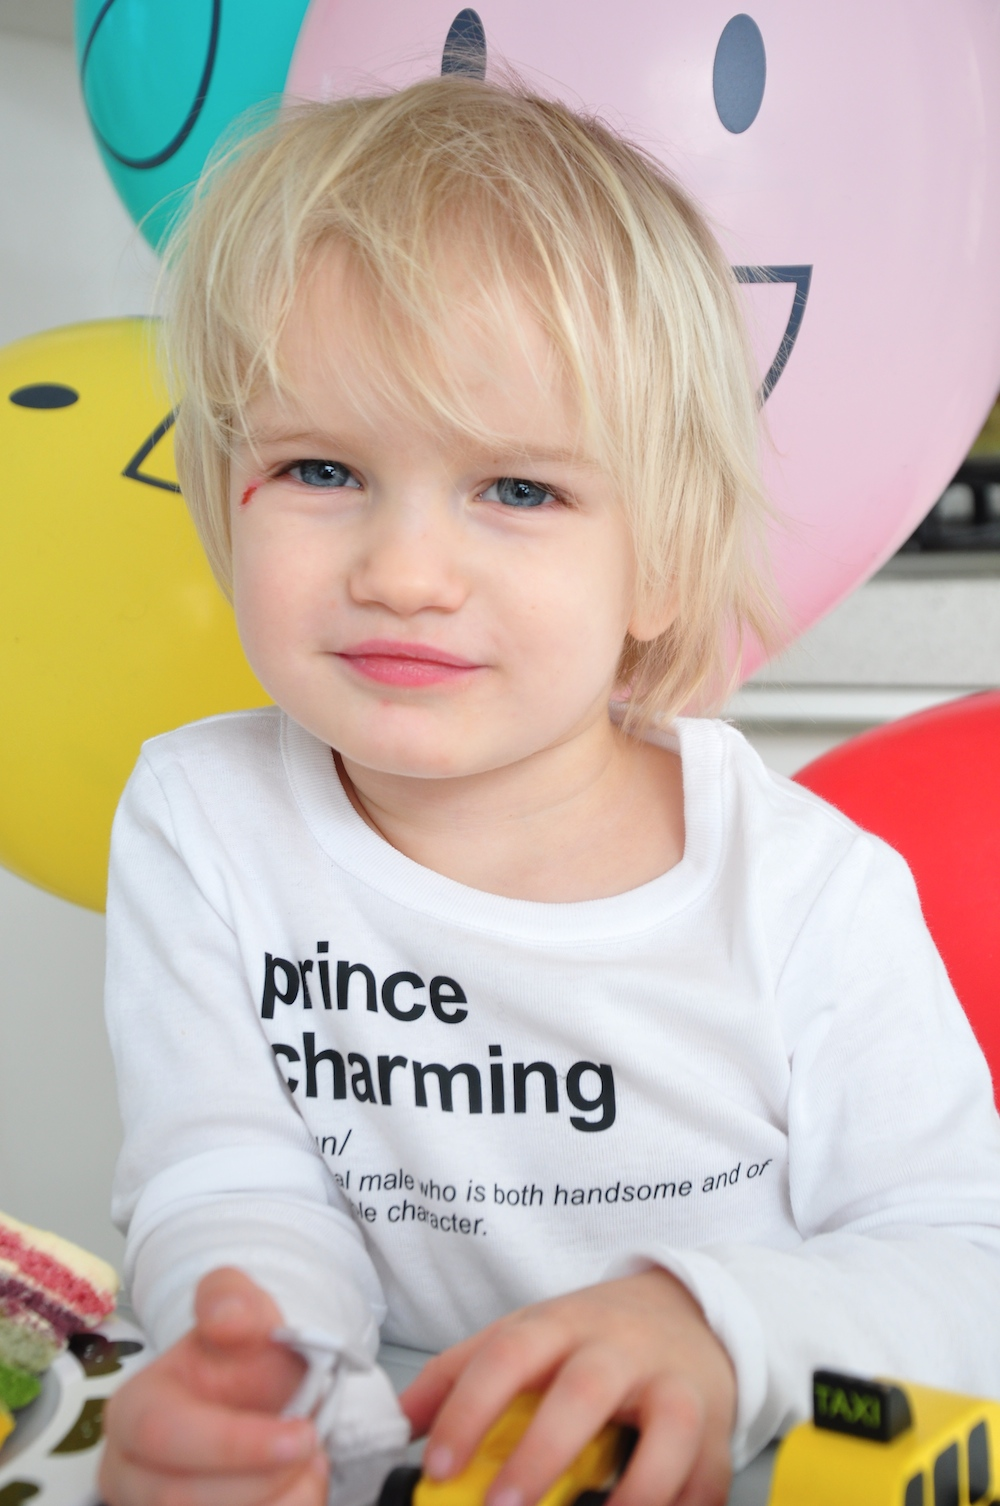 Prince_charming_dictionary_definition_tshirt